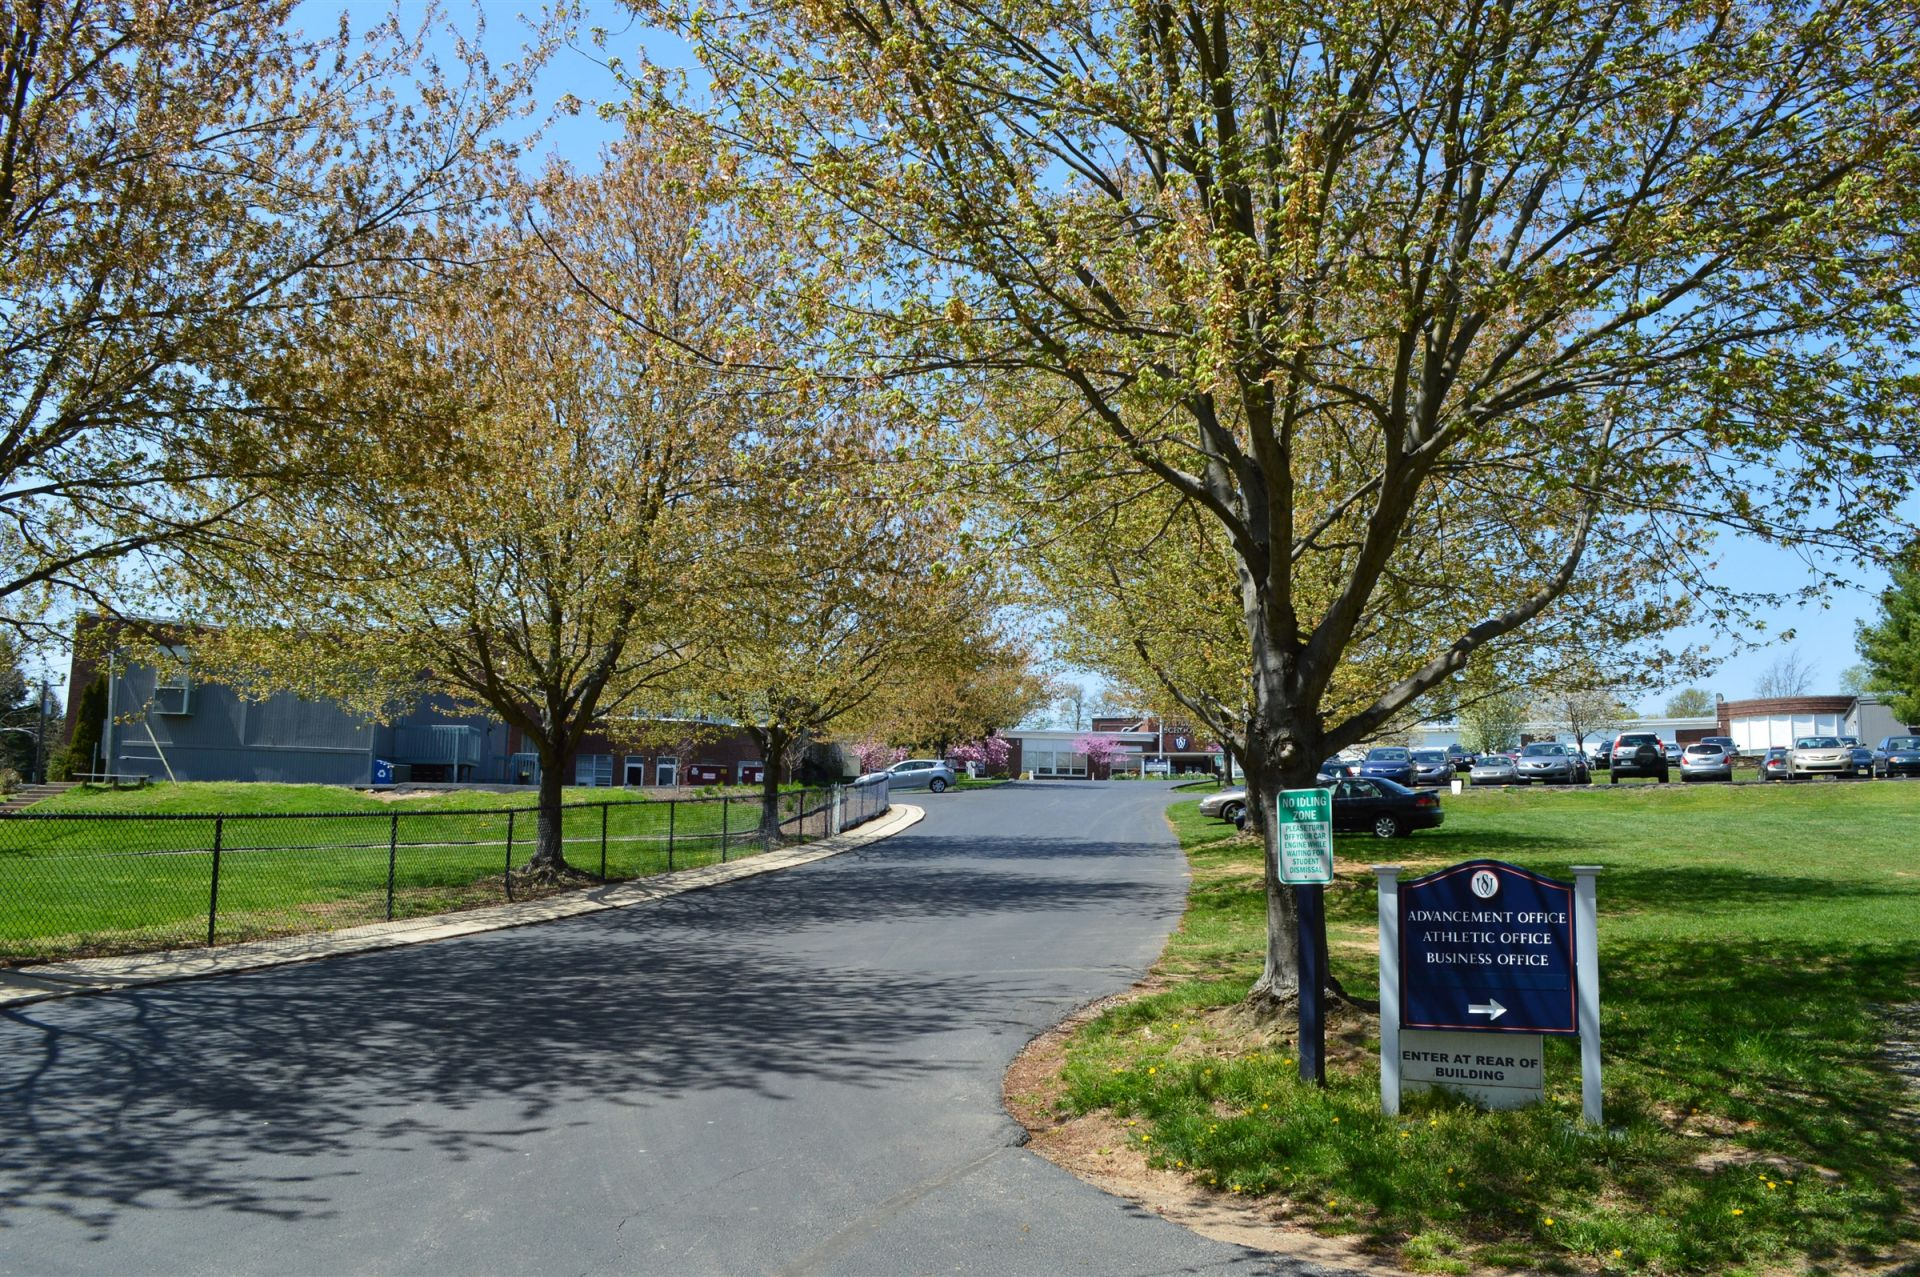 A view of campus from the Upper Gulph Road entrance.